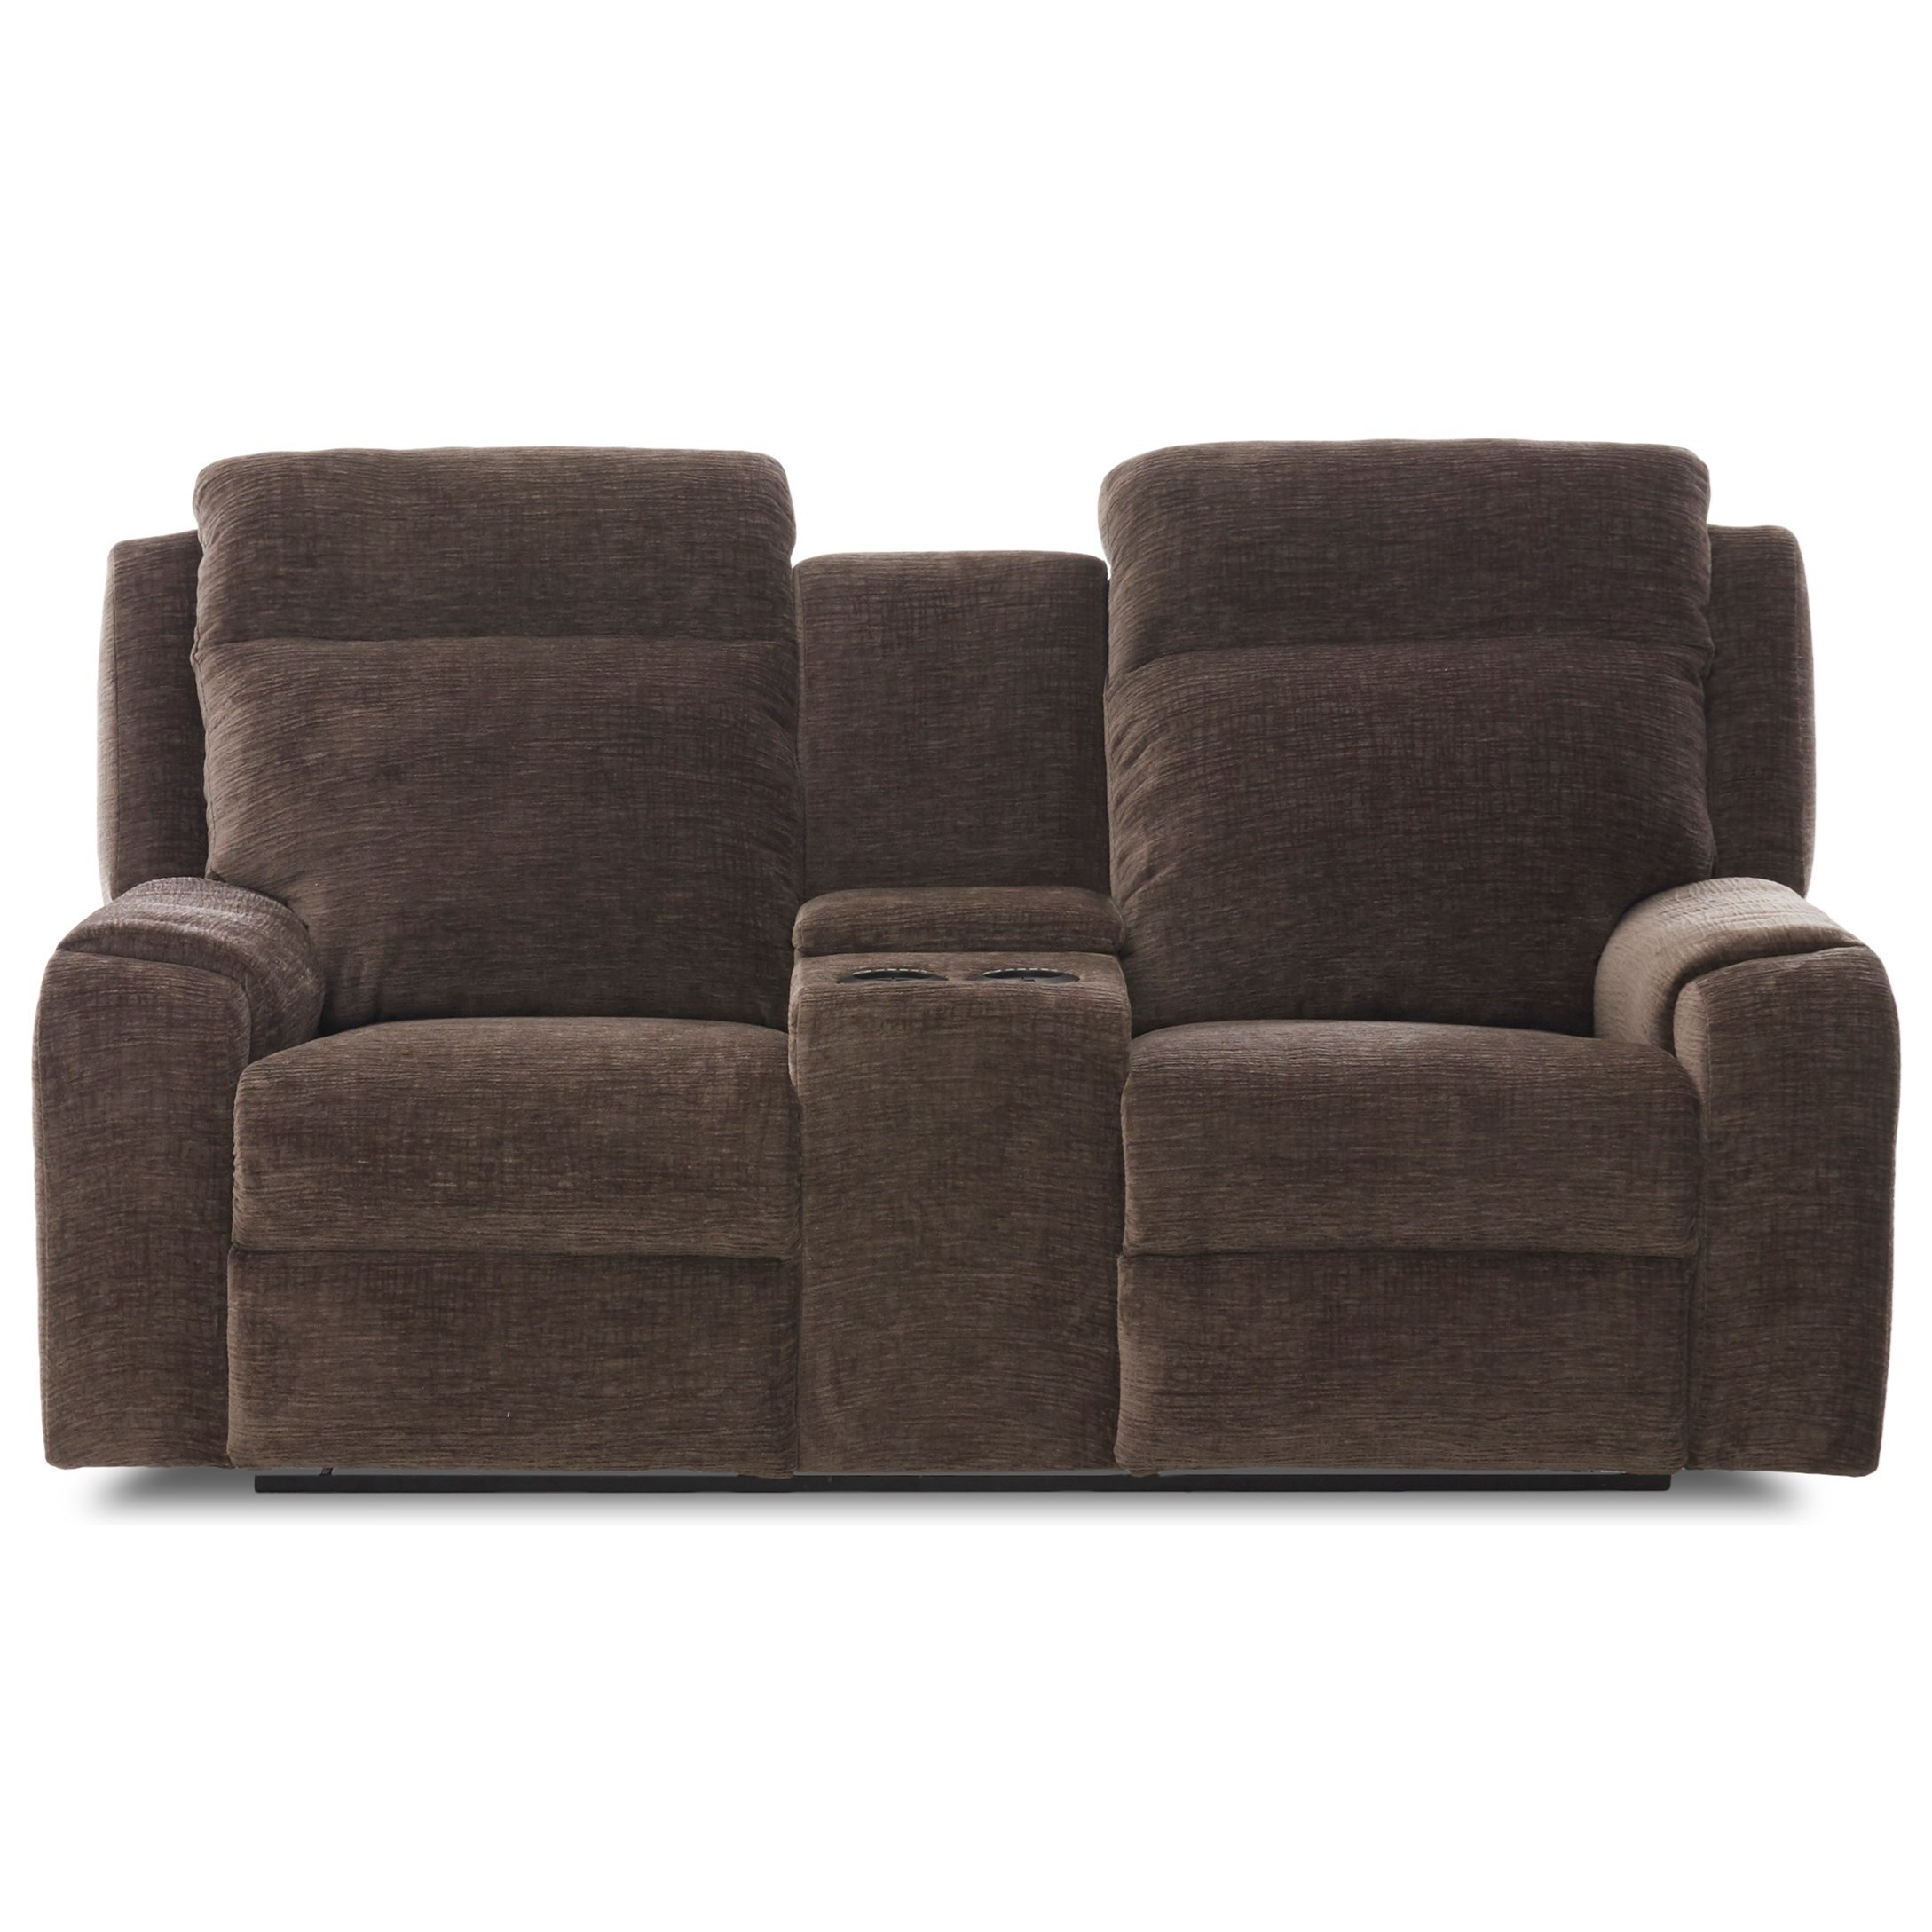 Power Reclining Console Loveseat with Power Headrests and USB Charging Ports